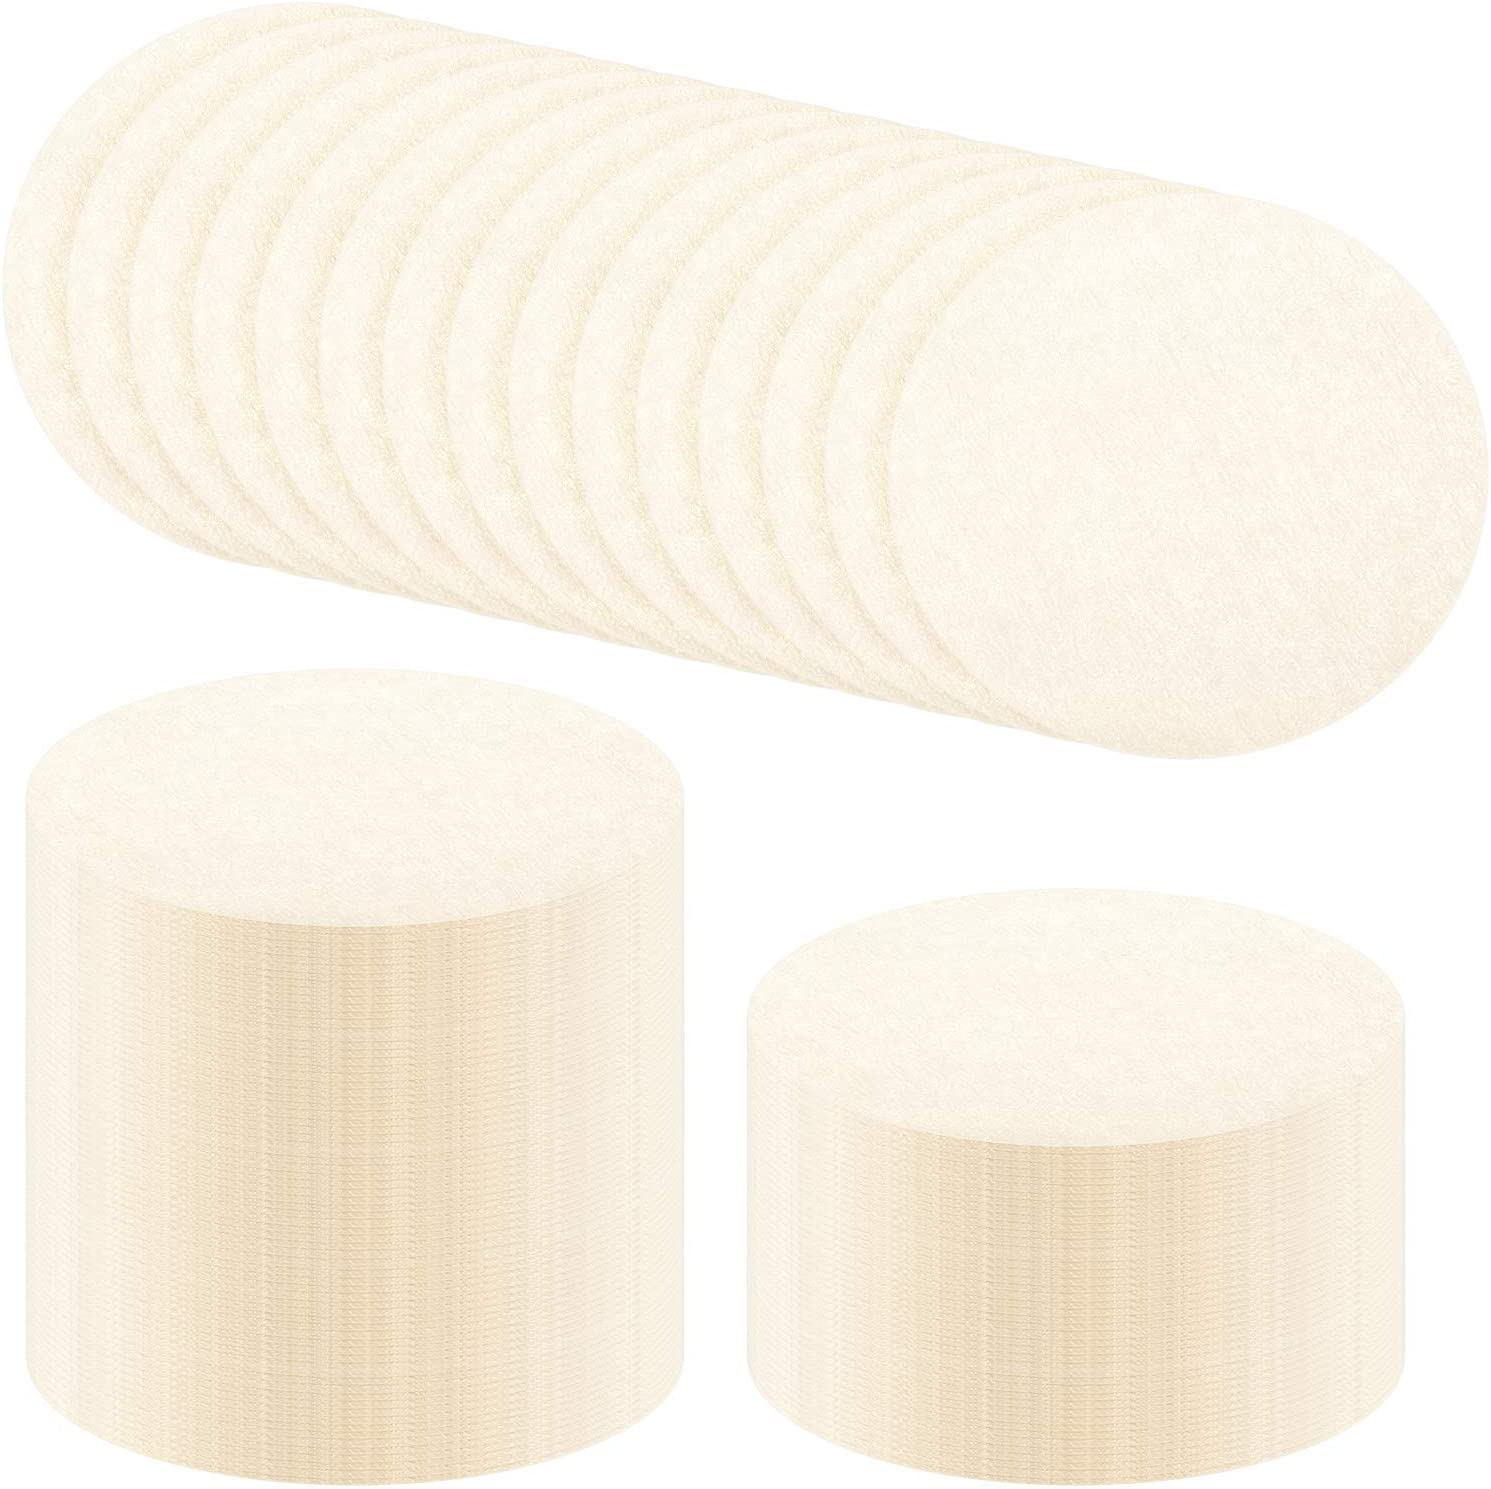 White, 500 Pieces Replacement Paper Filters Paper Coffee Filter Round Coffee Maker Filters Compatible with Aerobie Aeropress Coffee and Espresso Makers